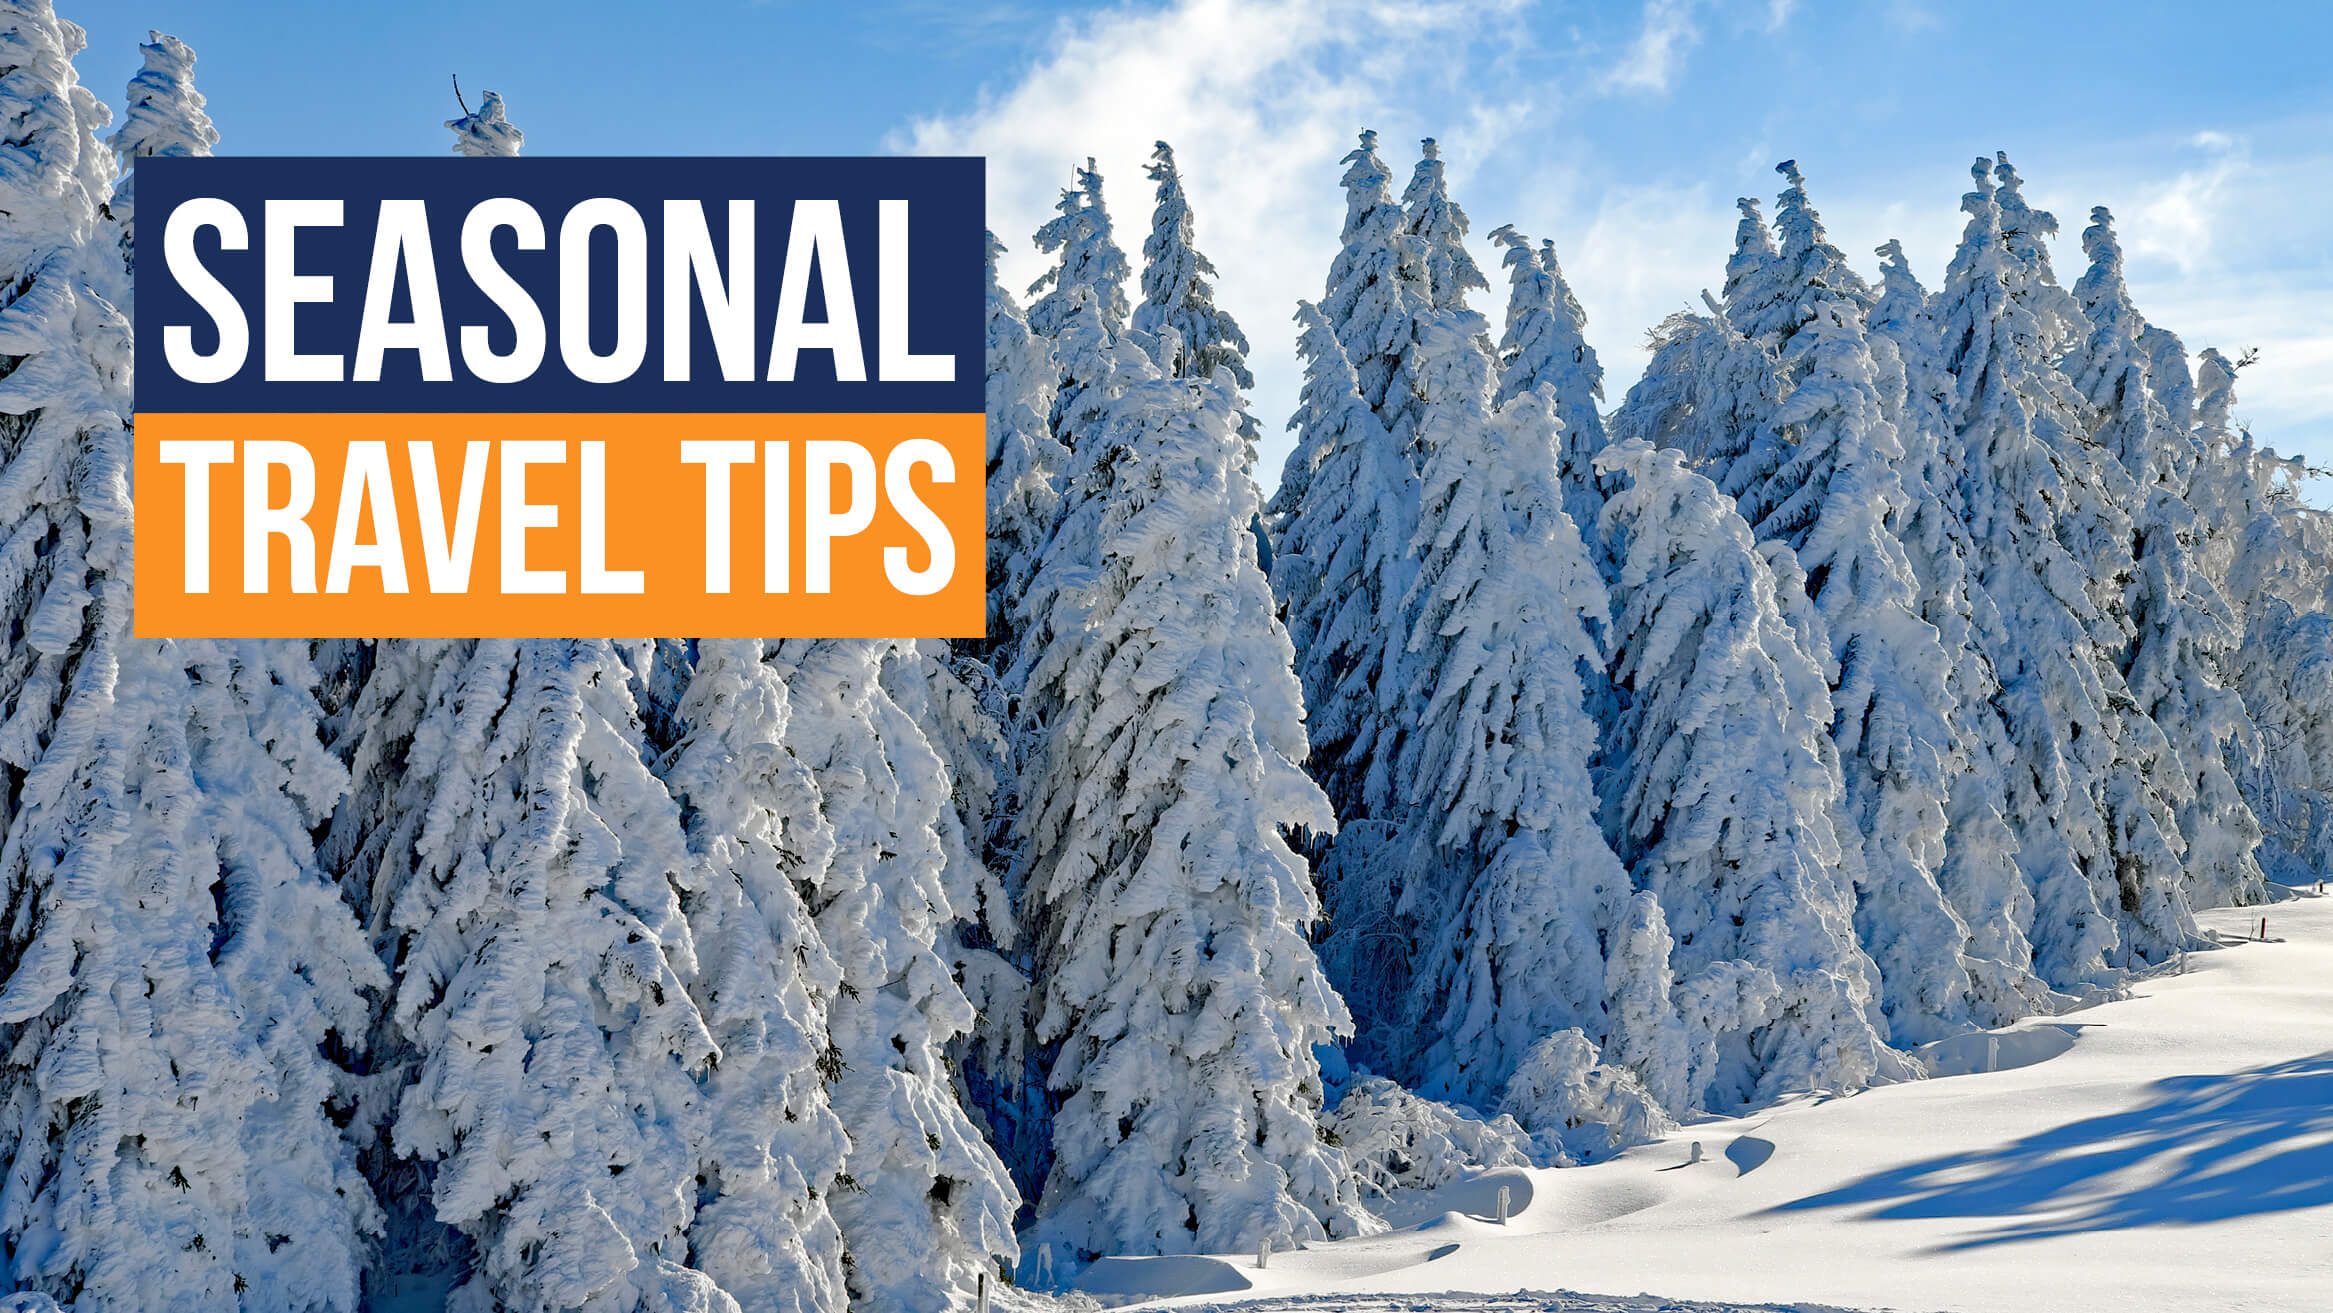 Seasonal travel tips header